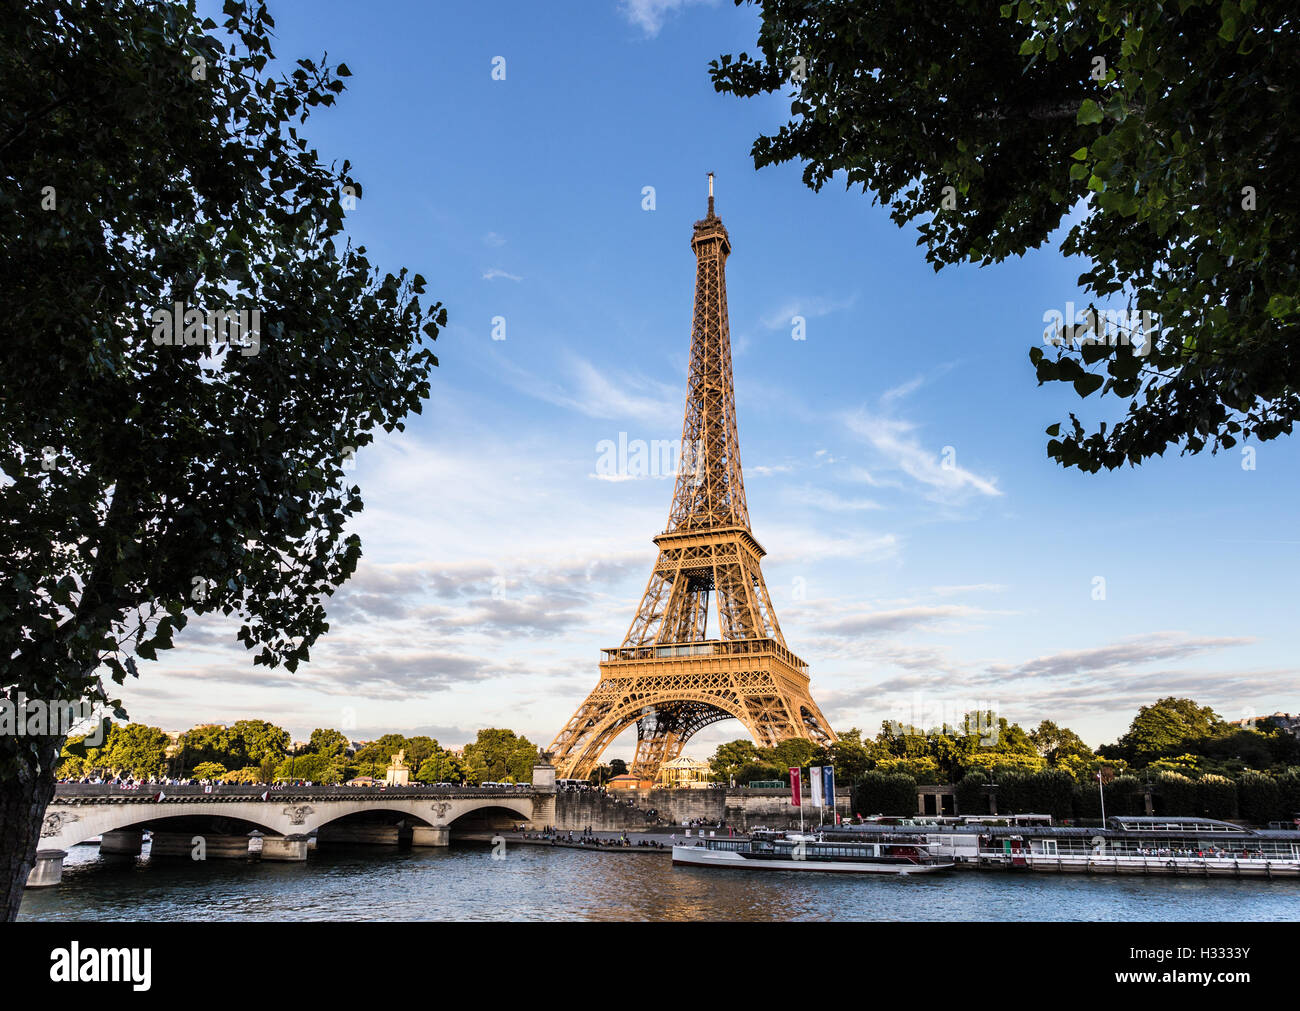 Sunset over the Eiffel Tower along the Seine river in Paris, France capital city. - Stock Image